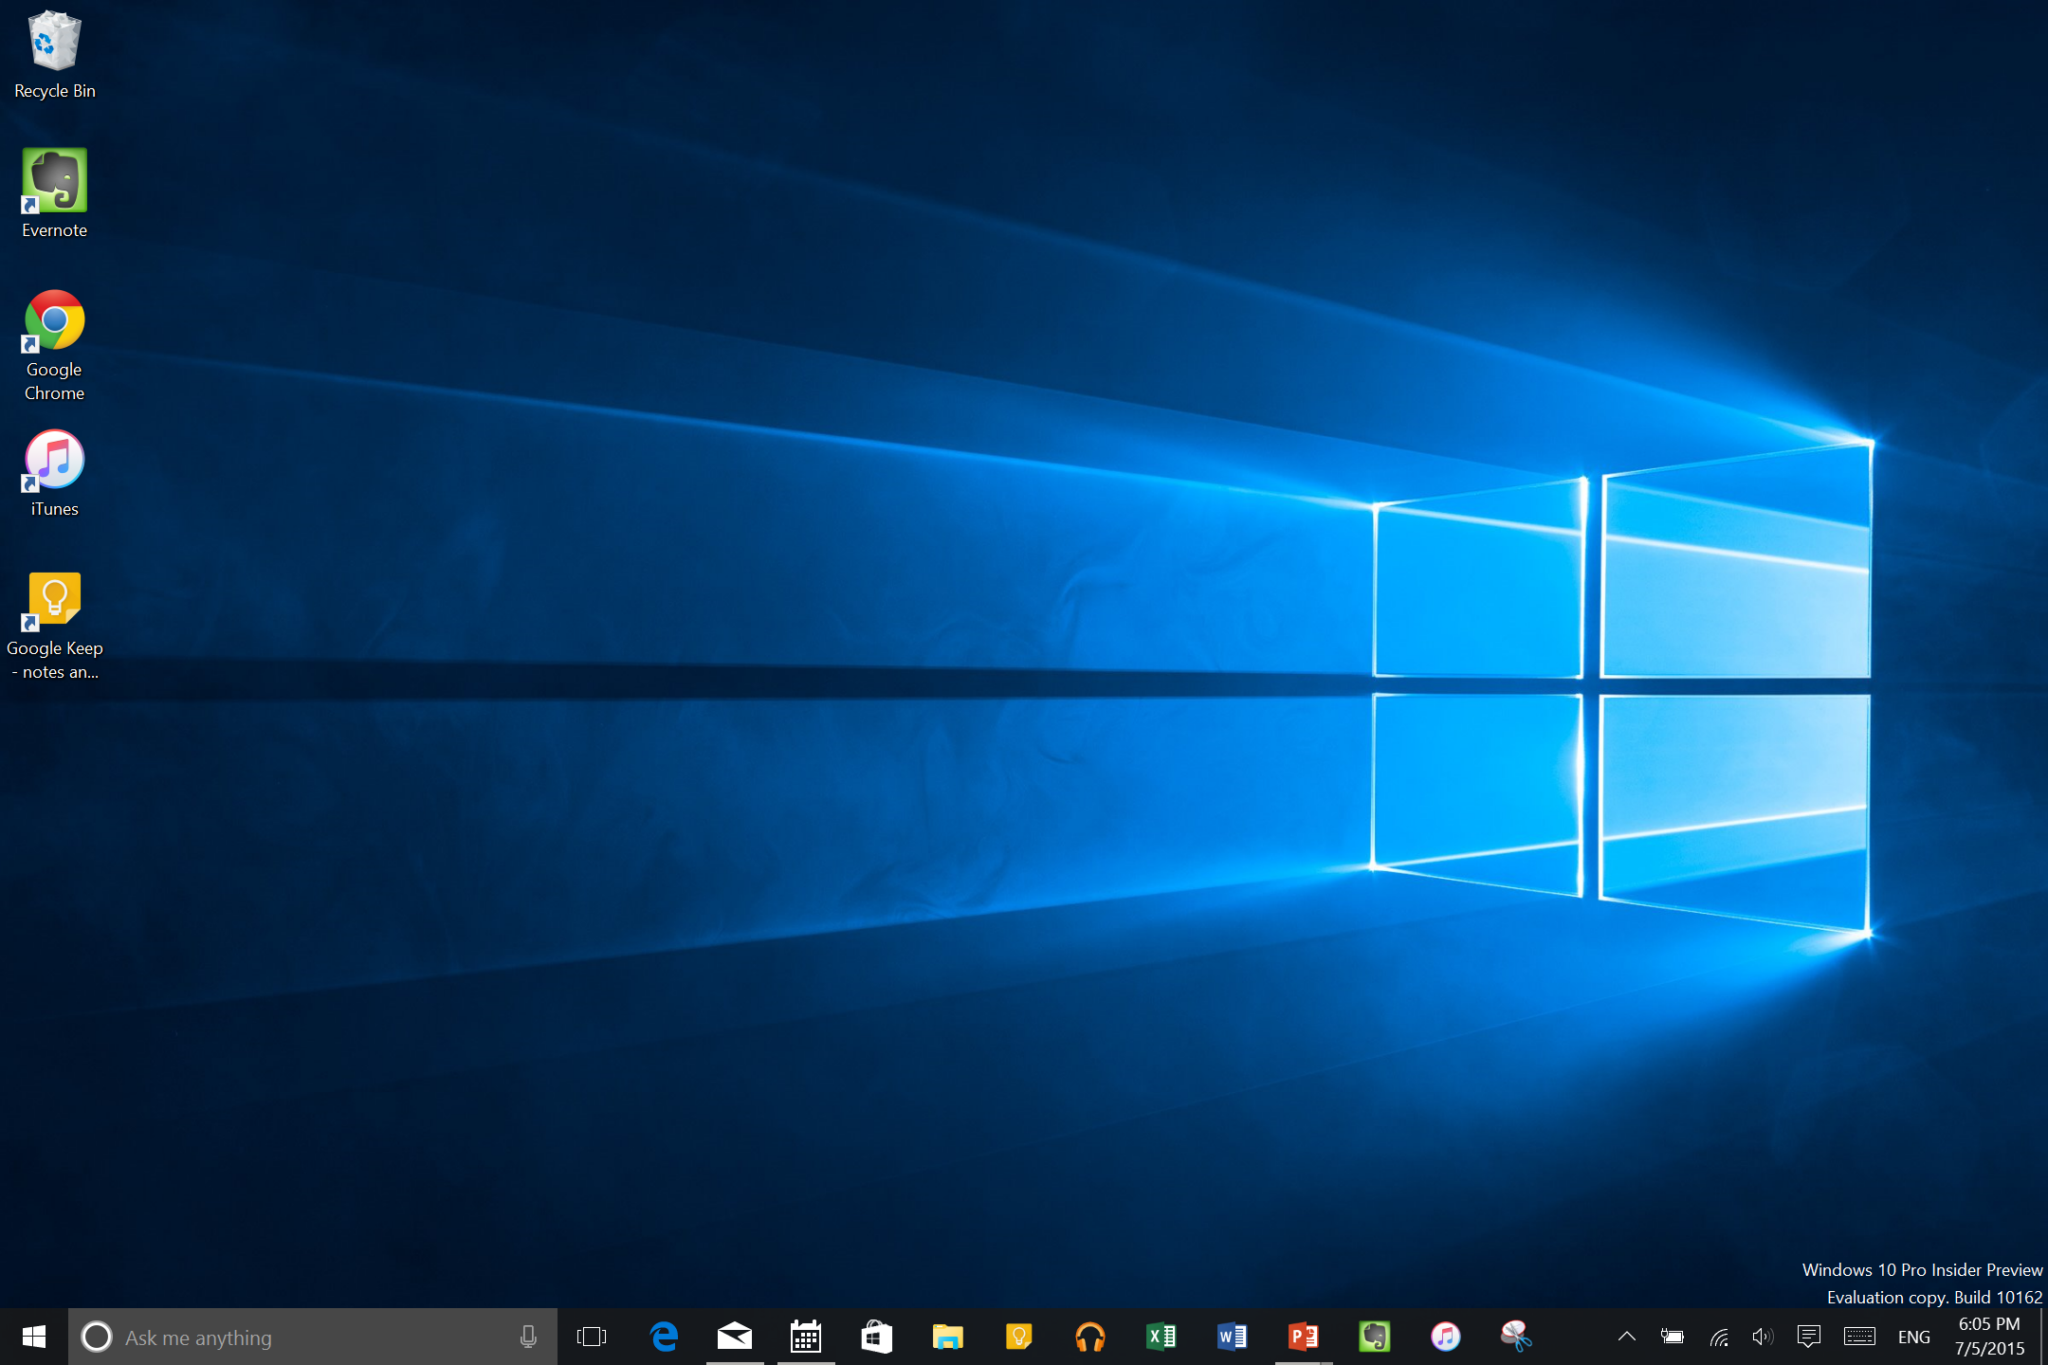 Windows 10 Update 2015